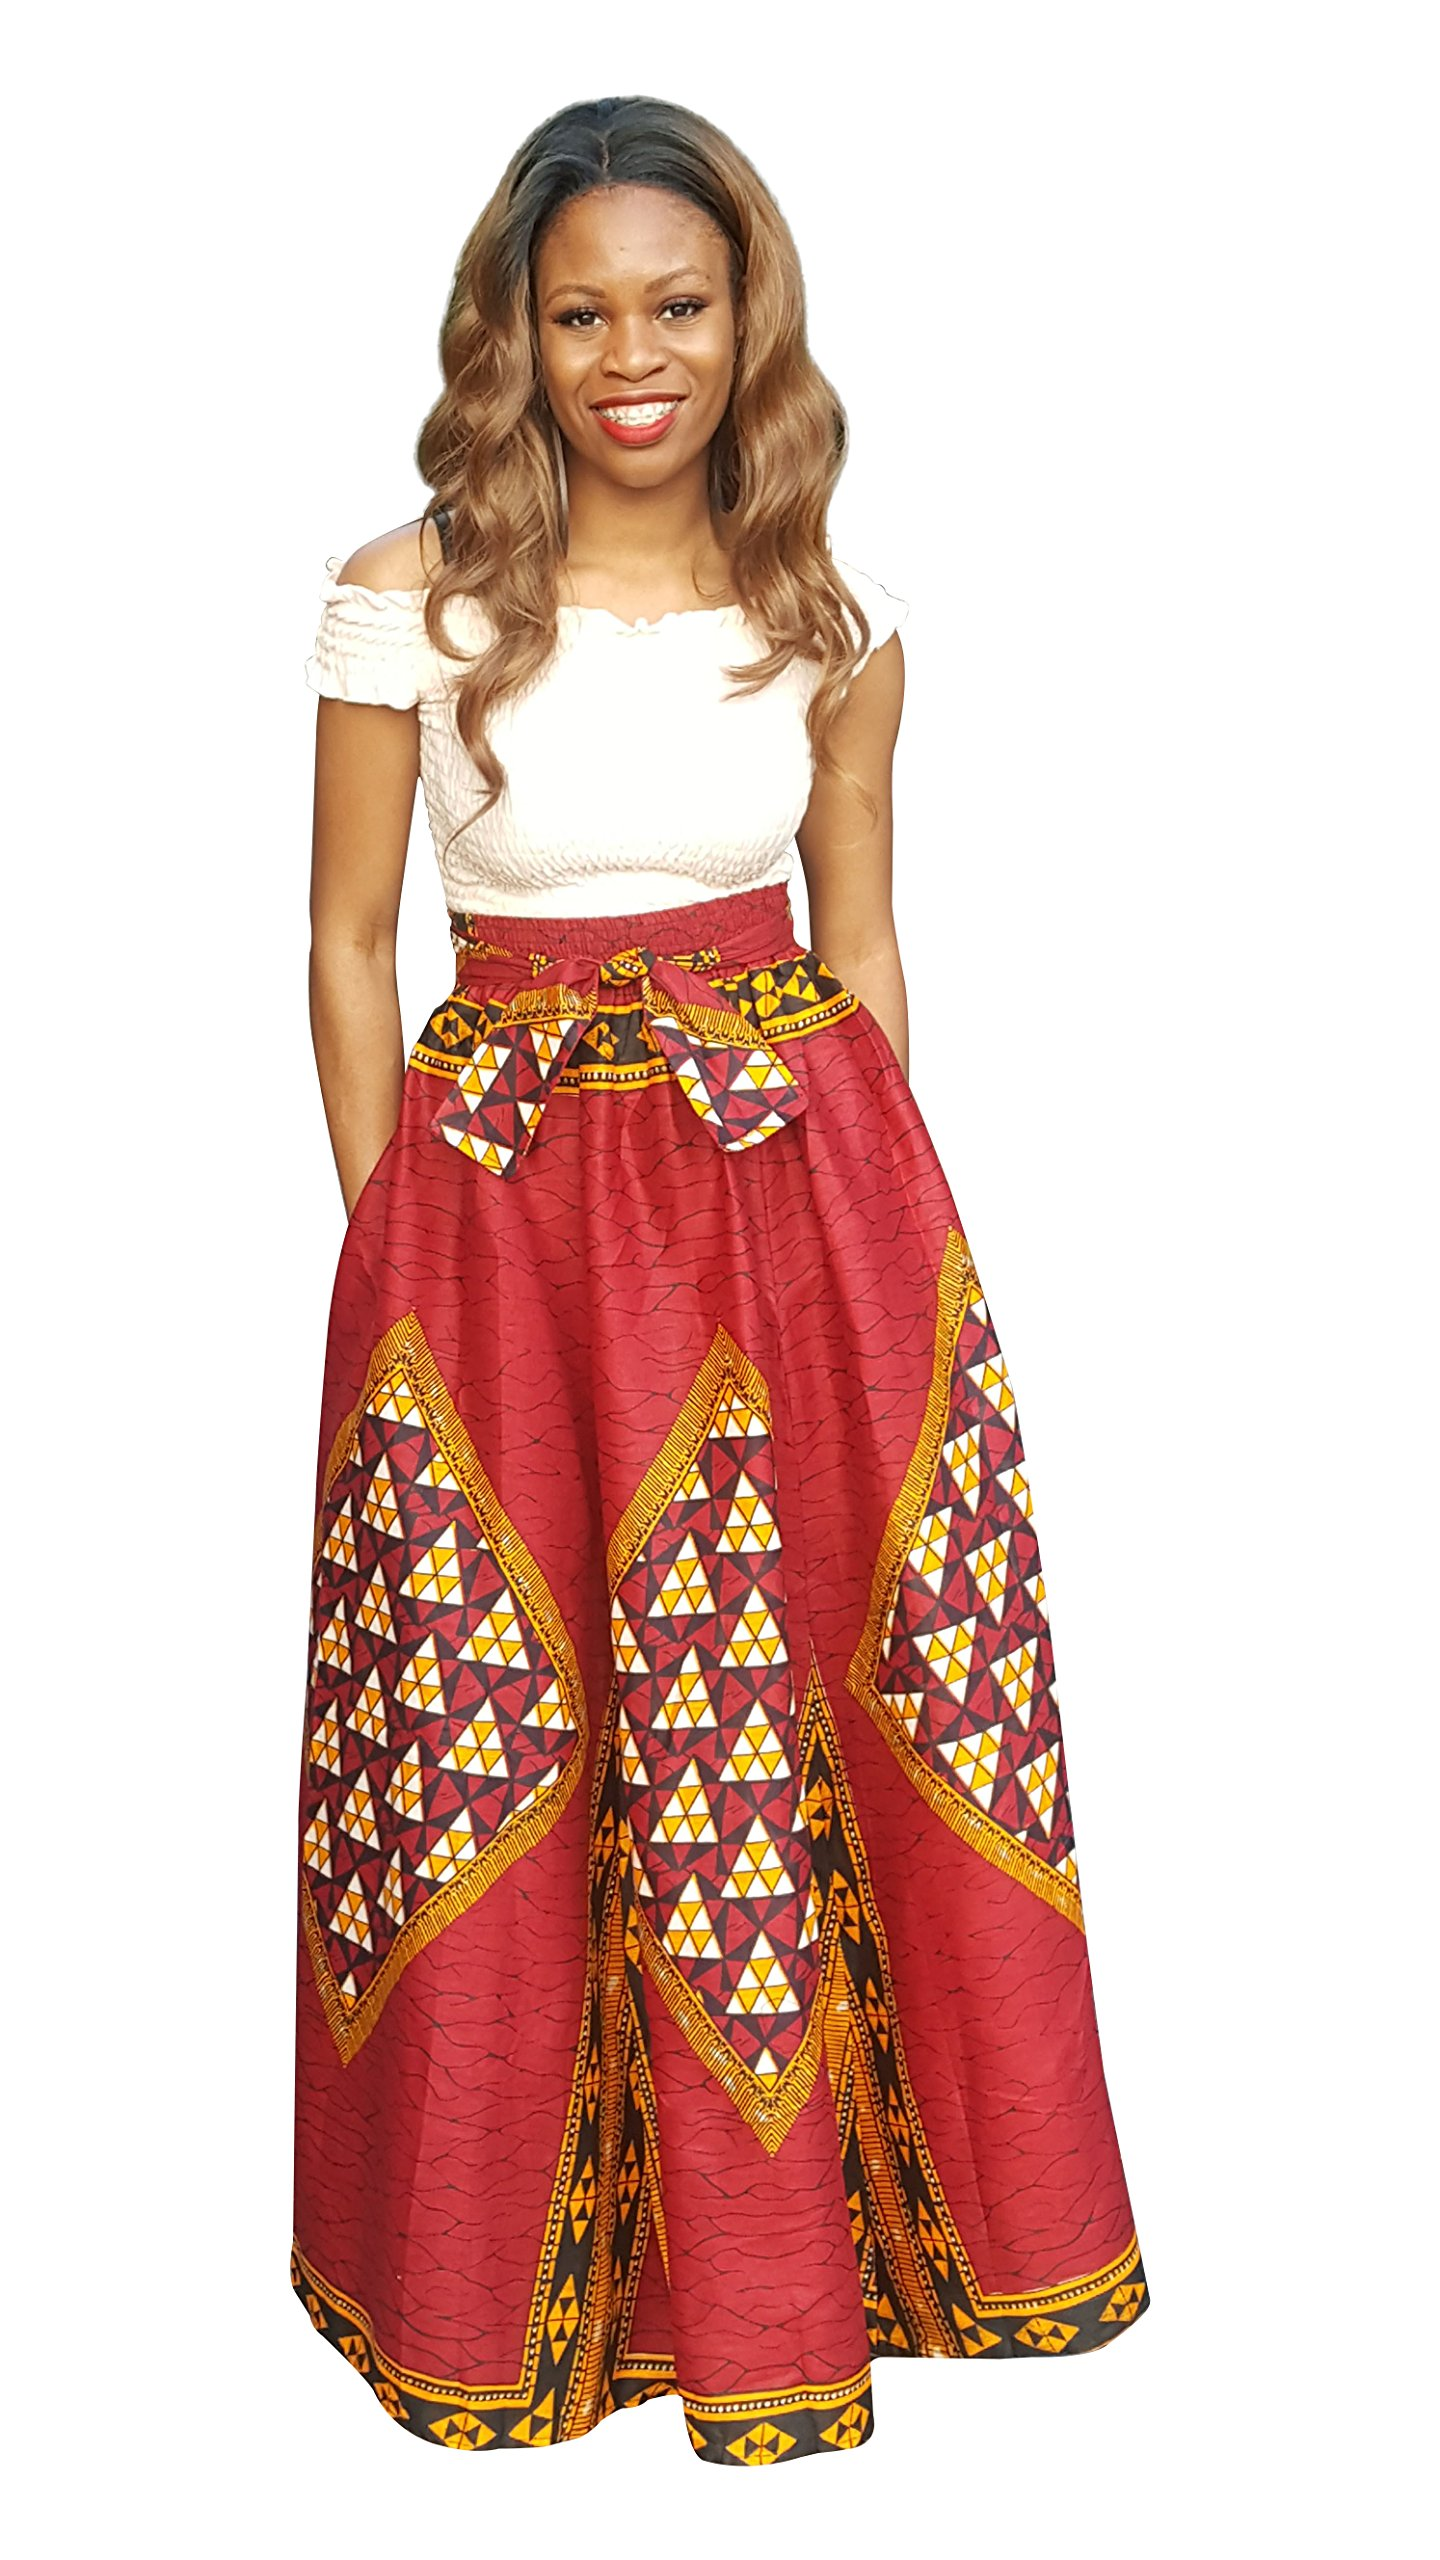 eb25605b643b29 Get Quotations · Dupsie's Red African Print Diamond High Waist Maxi Skirt